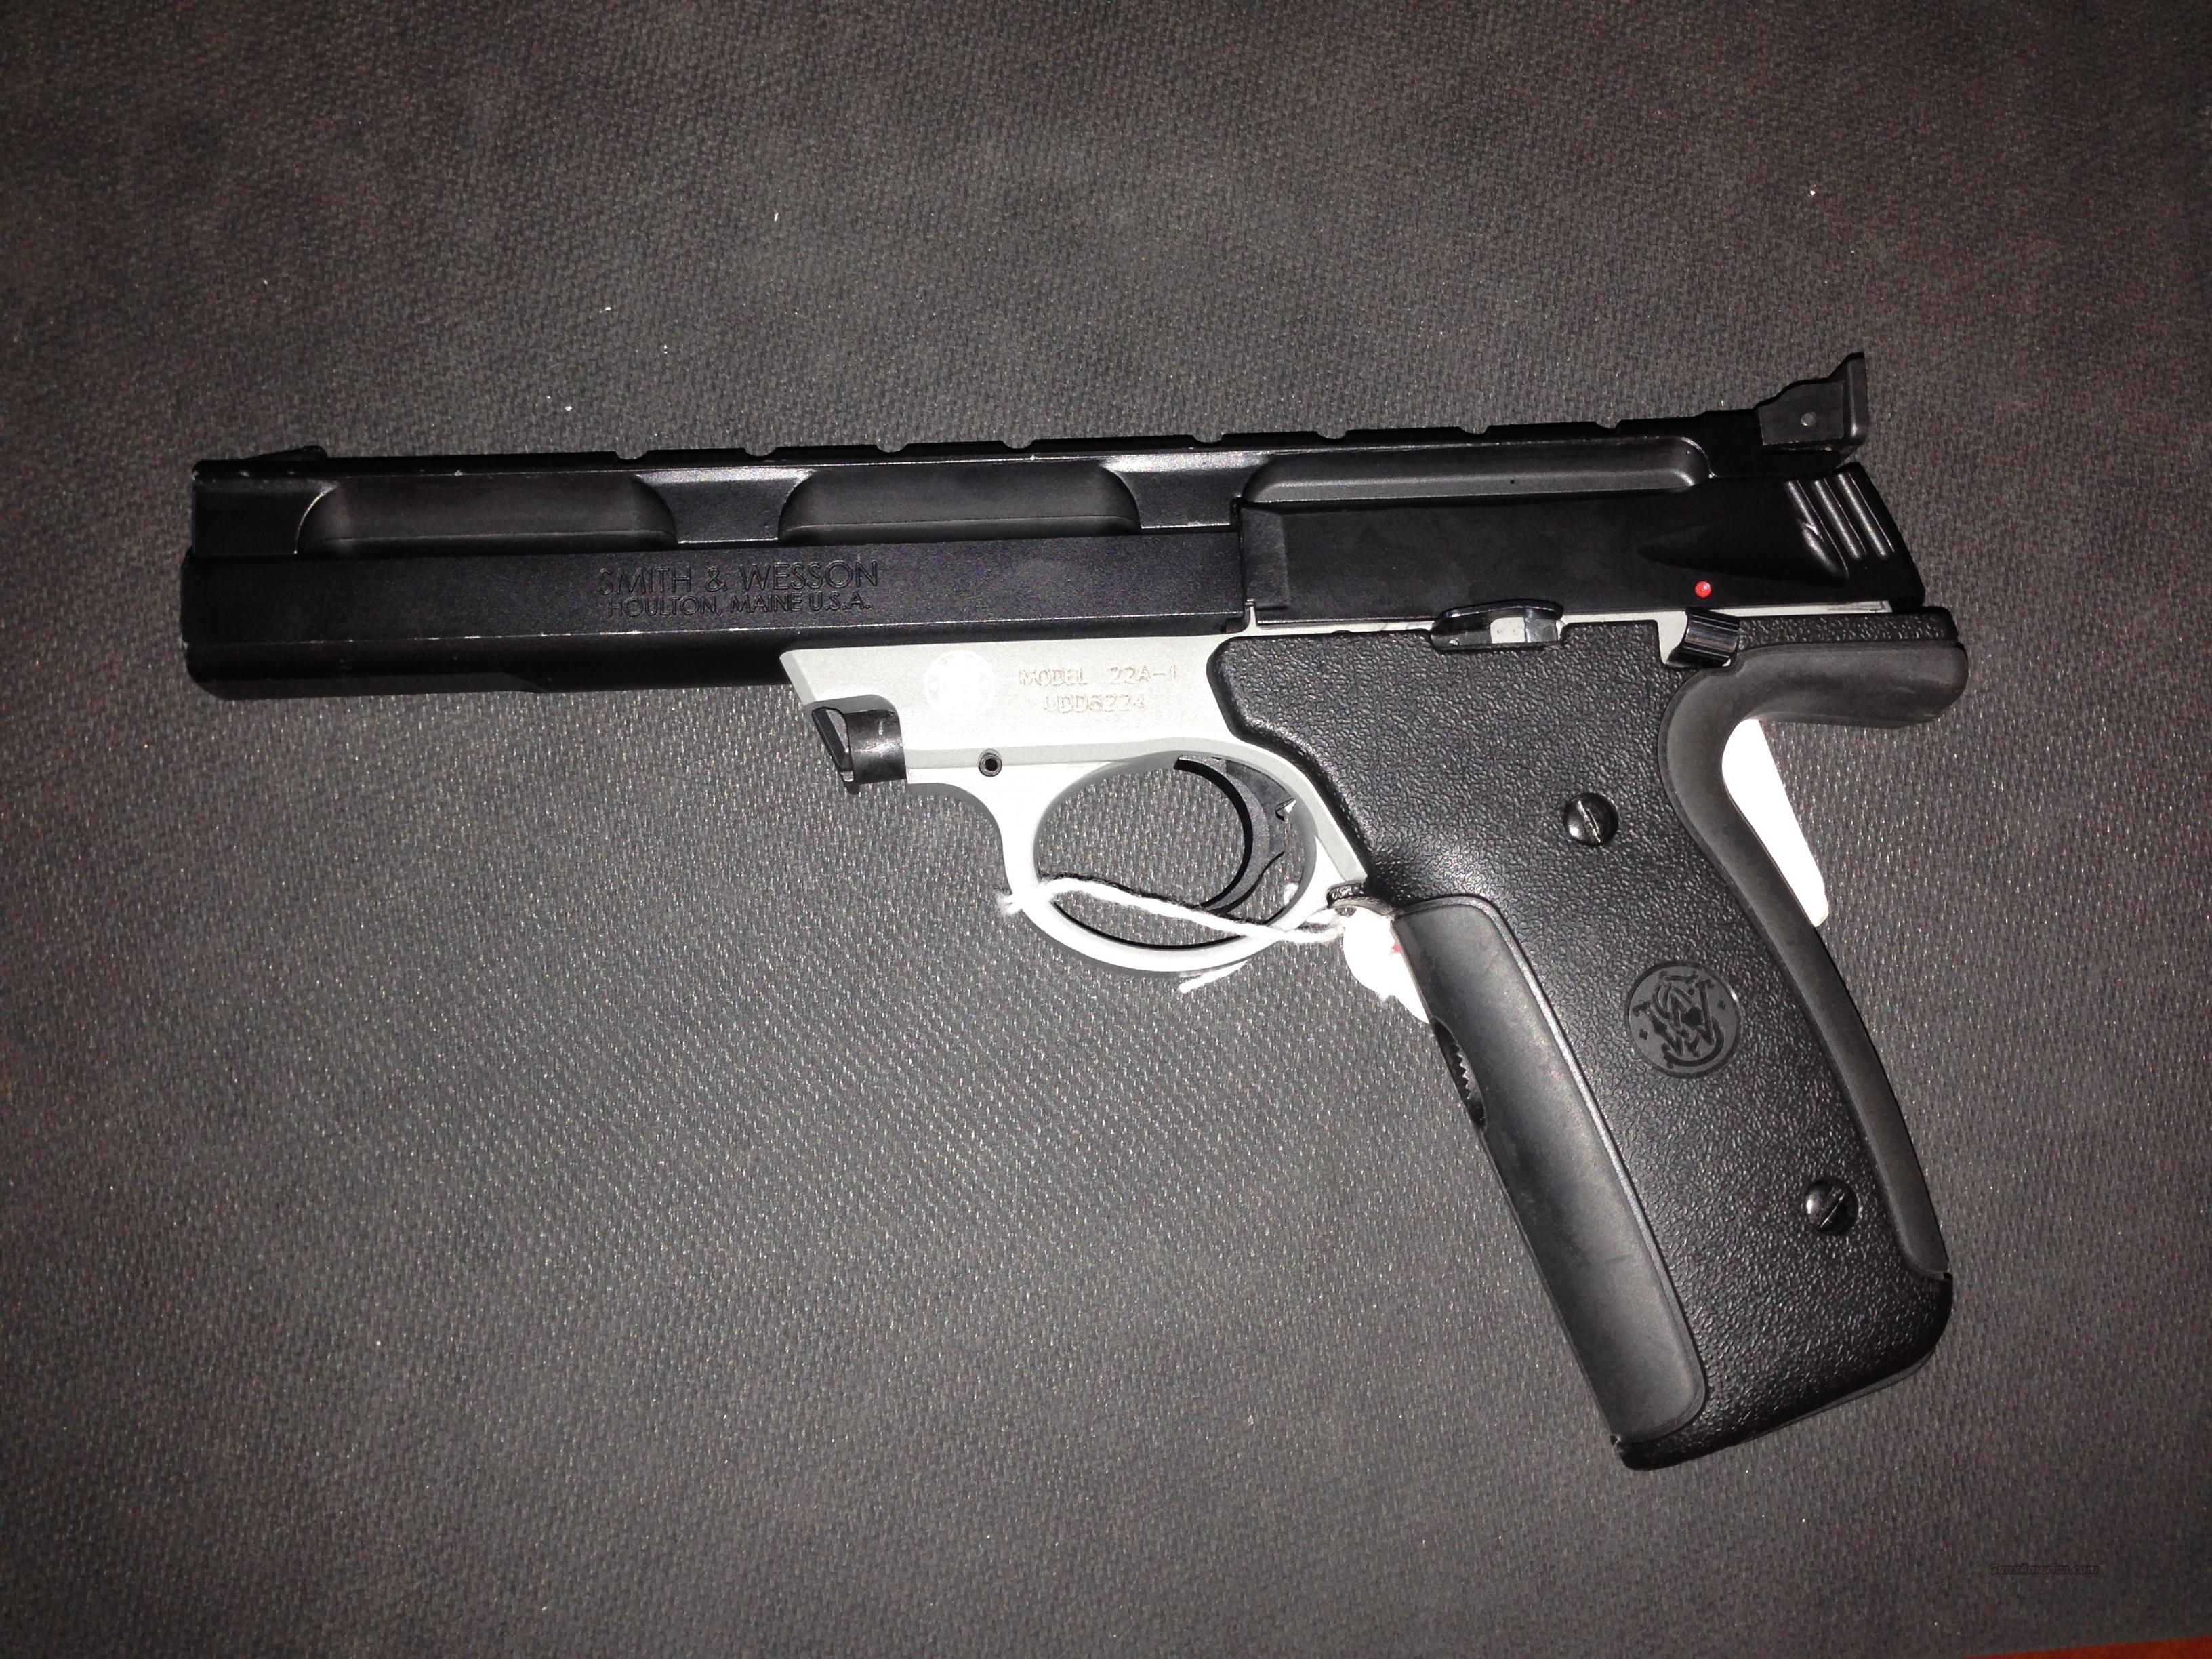 Smith and Wesson 22 Auto .22LR 5.5 in.  Guns > Pistols > Smith & Wesson Pistols - Autos > .22 Autos